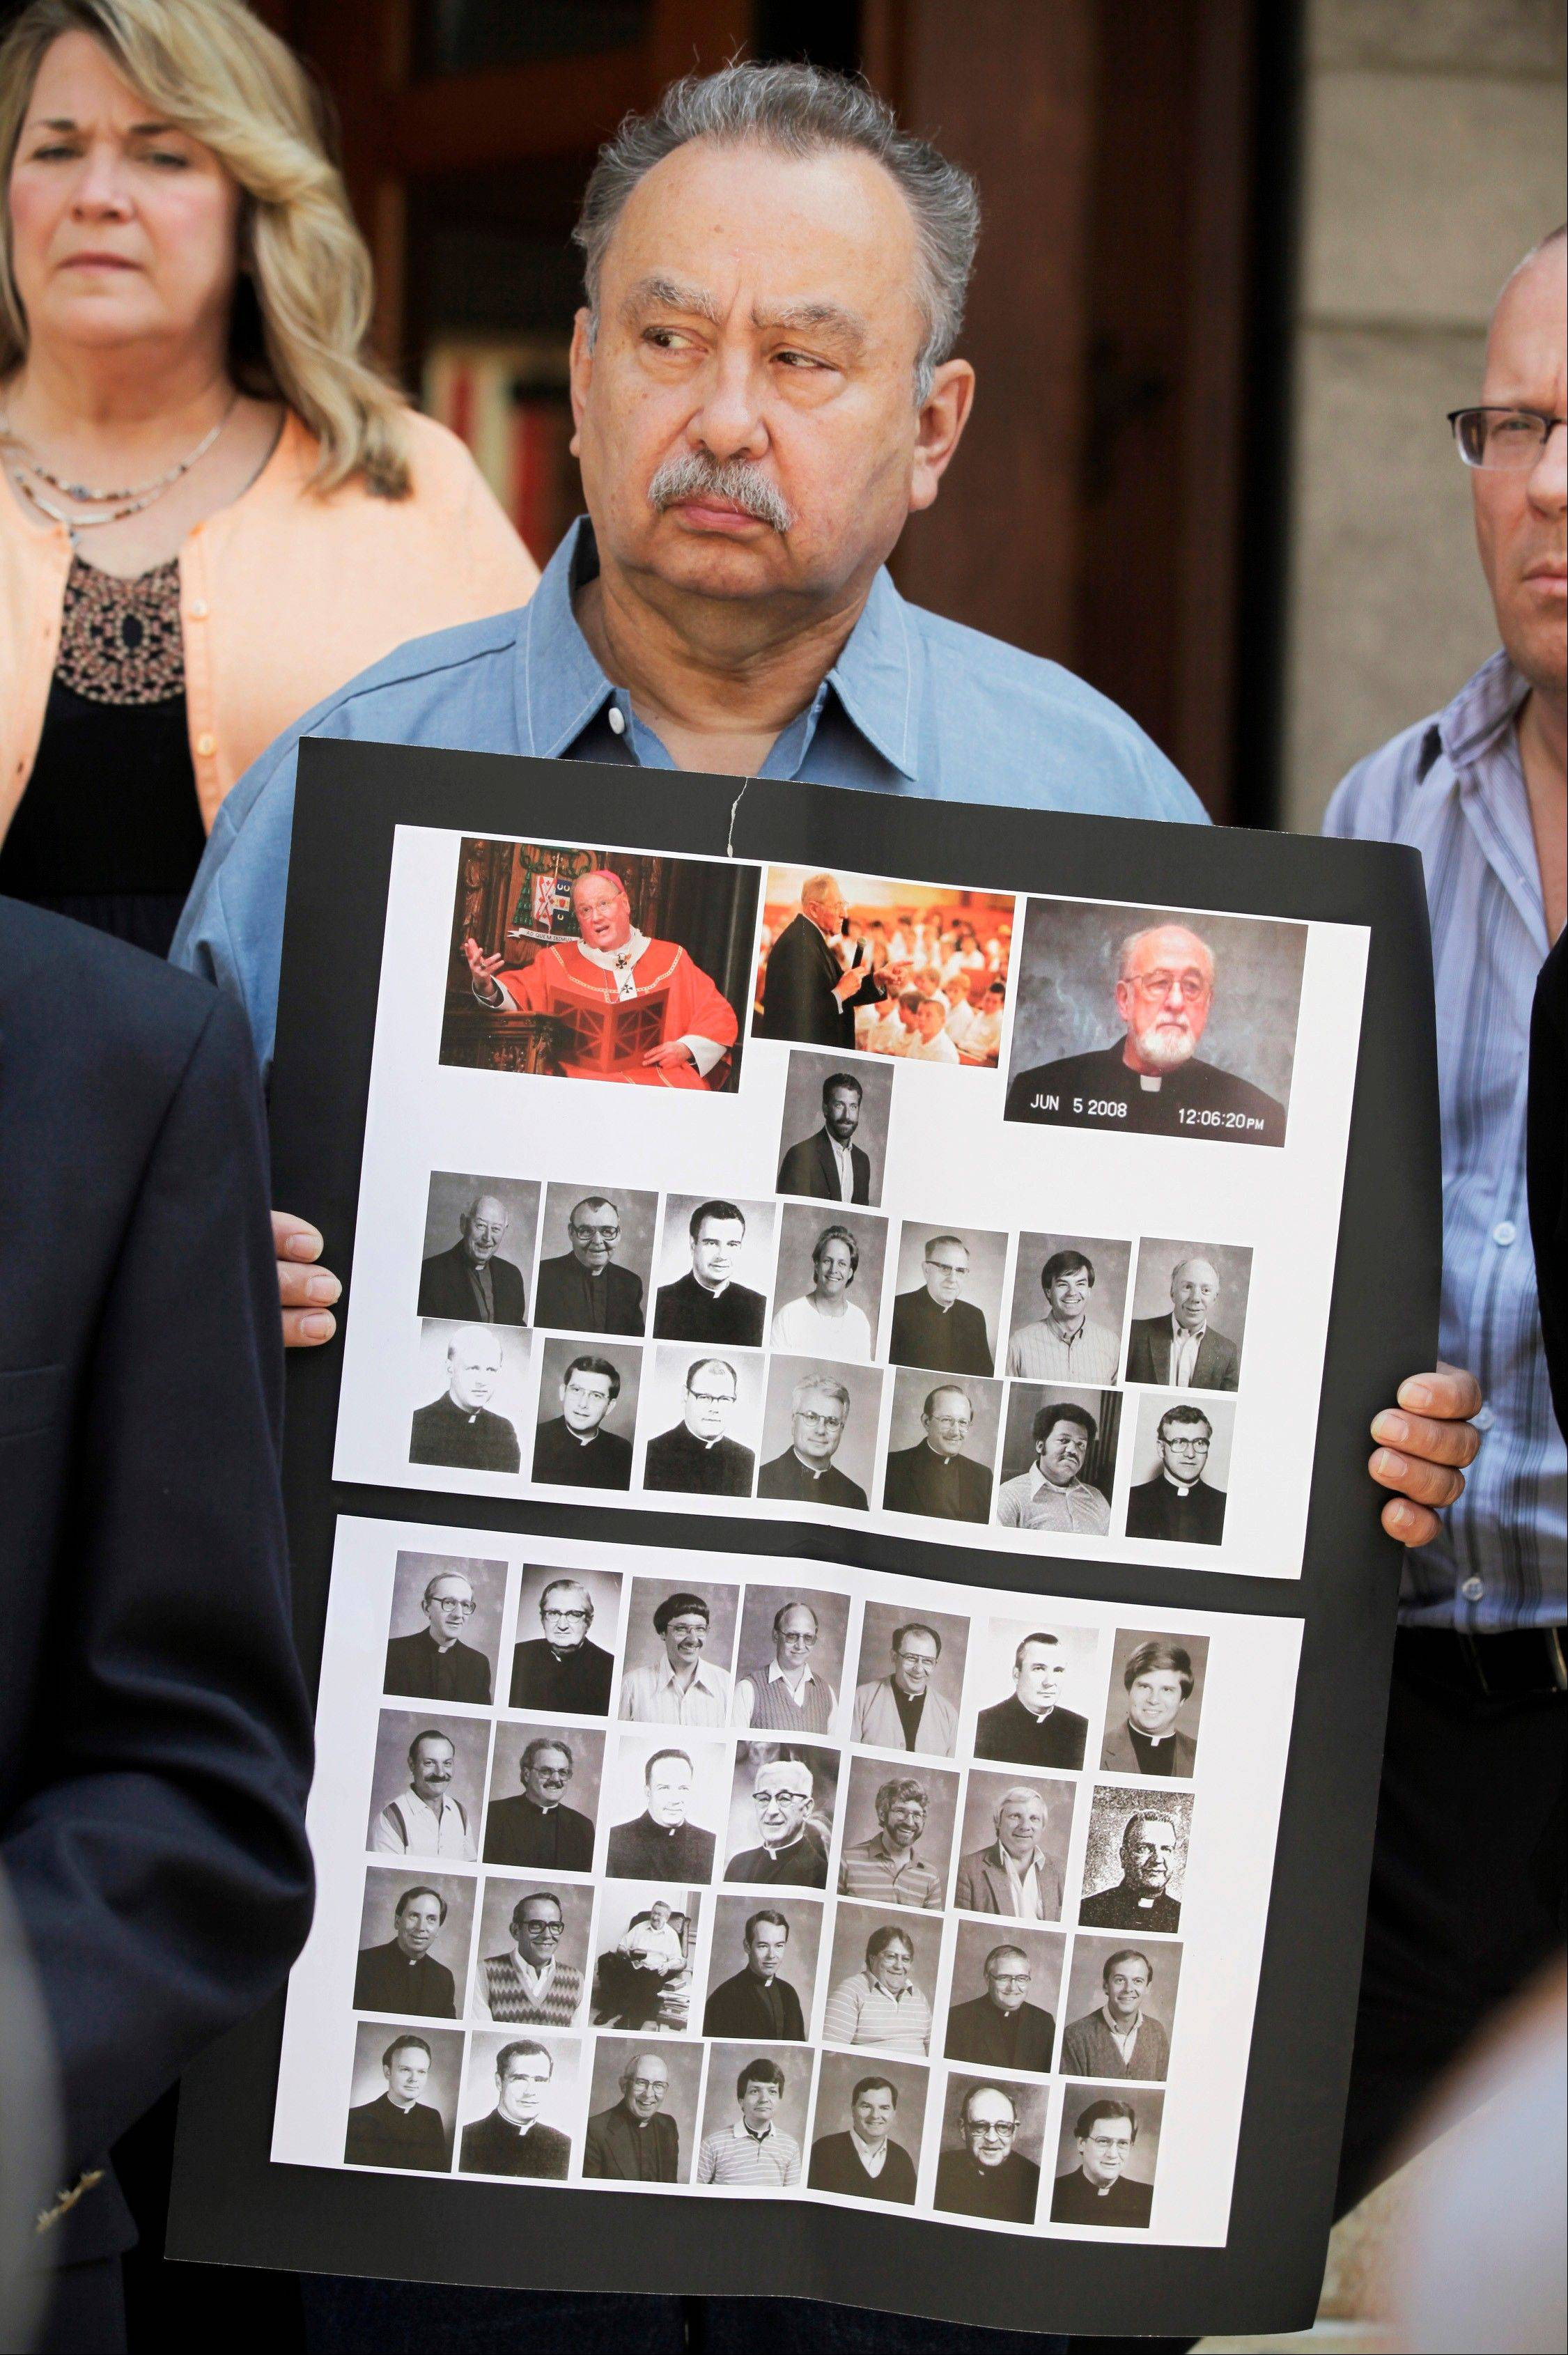 Arthur Budzinaki holds a poster of the 45 priests named on the archdiocese's website as having substantiated allegations of sexually abusing at least one minor.